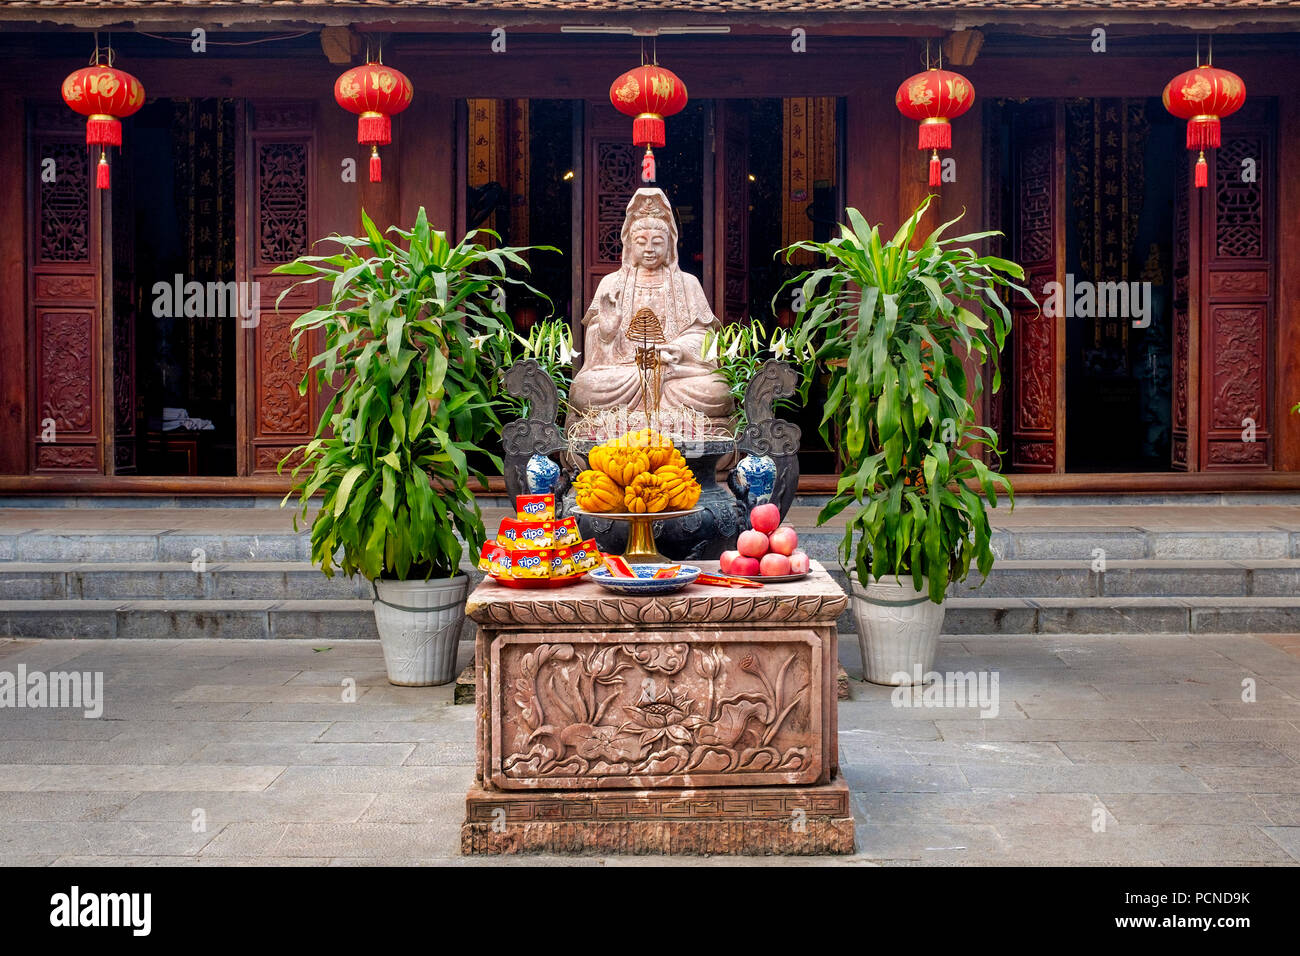 Avalokitesvara shrine in the One Pillar Pagoda Complex, Hanoi, Vietnam - Stock Image